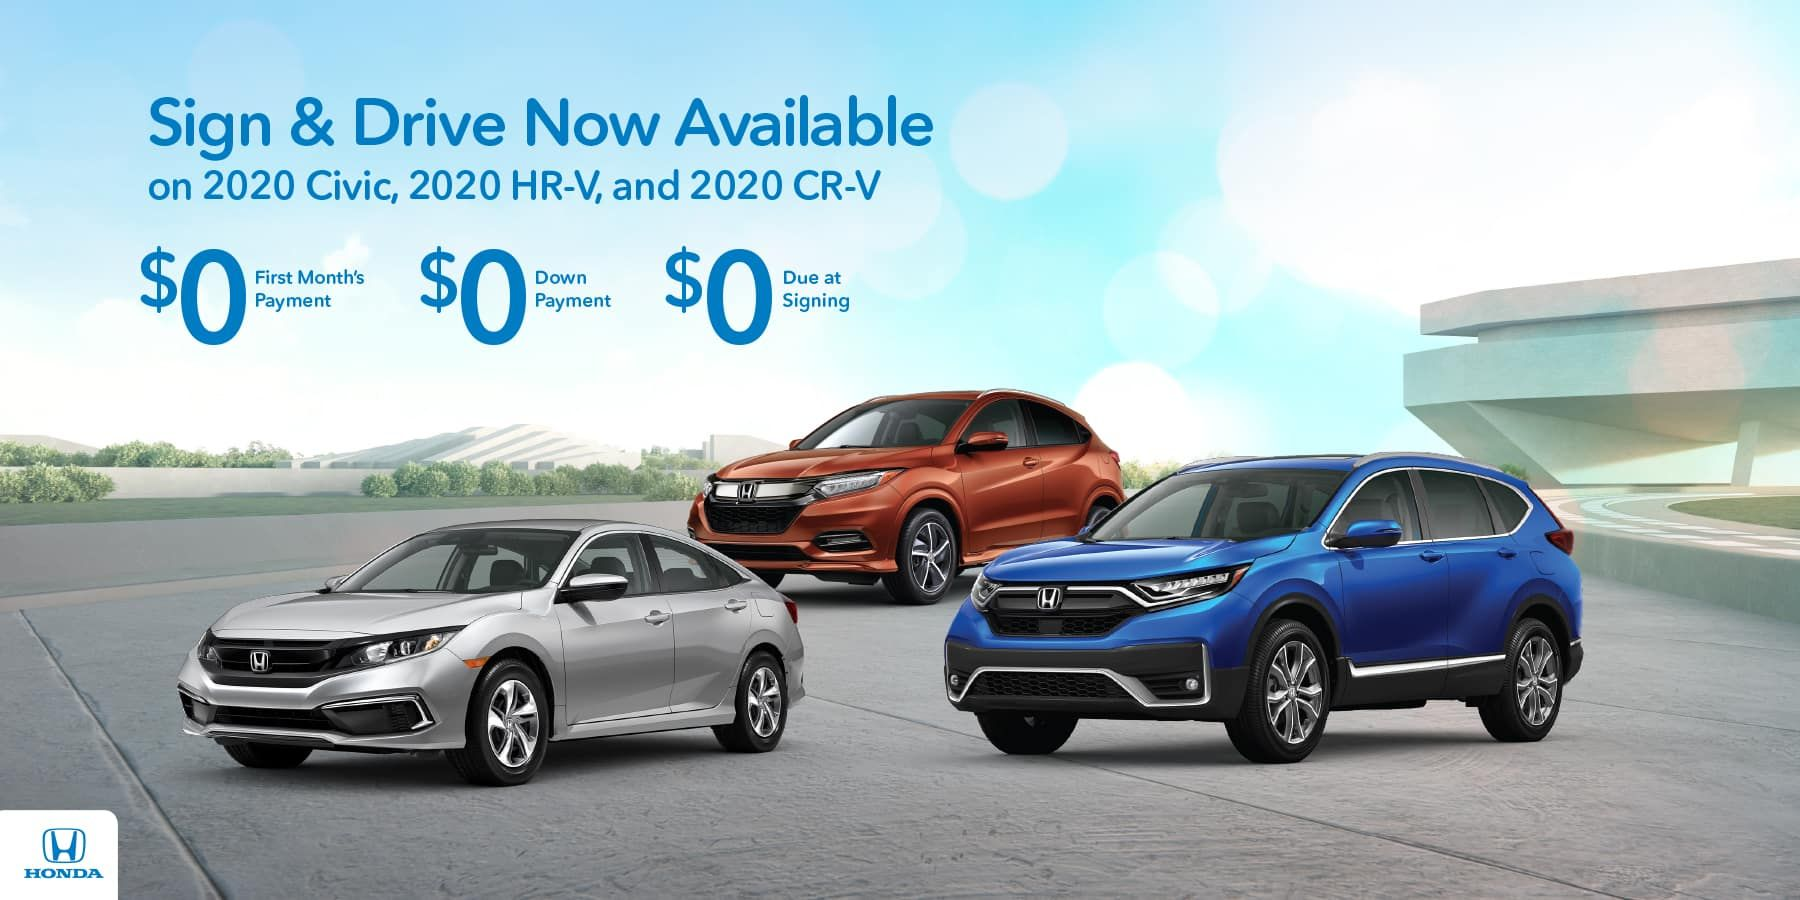 Drive Home In A Budget Friendly New Honda Model By Taking Advantage Of The Current Honda Specials And Offers Available At Lease Specials New Honda Car Finance